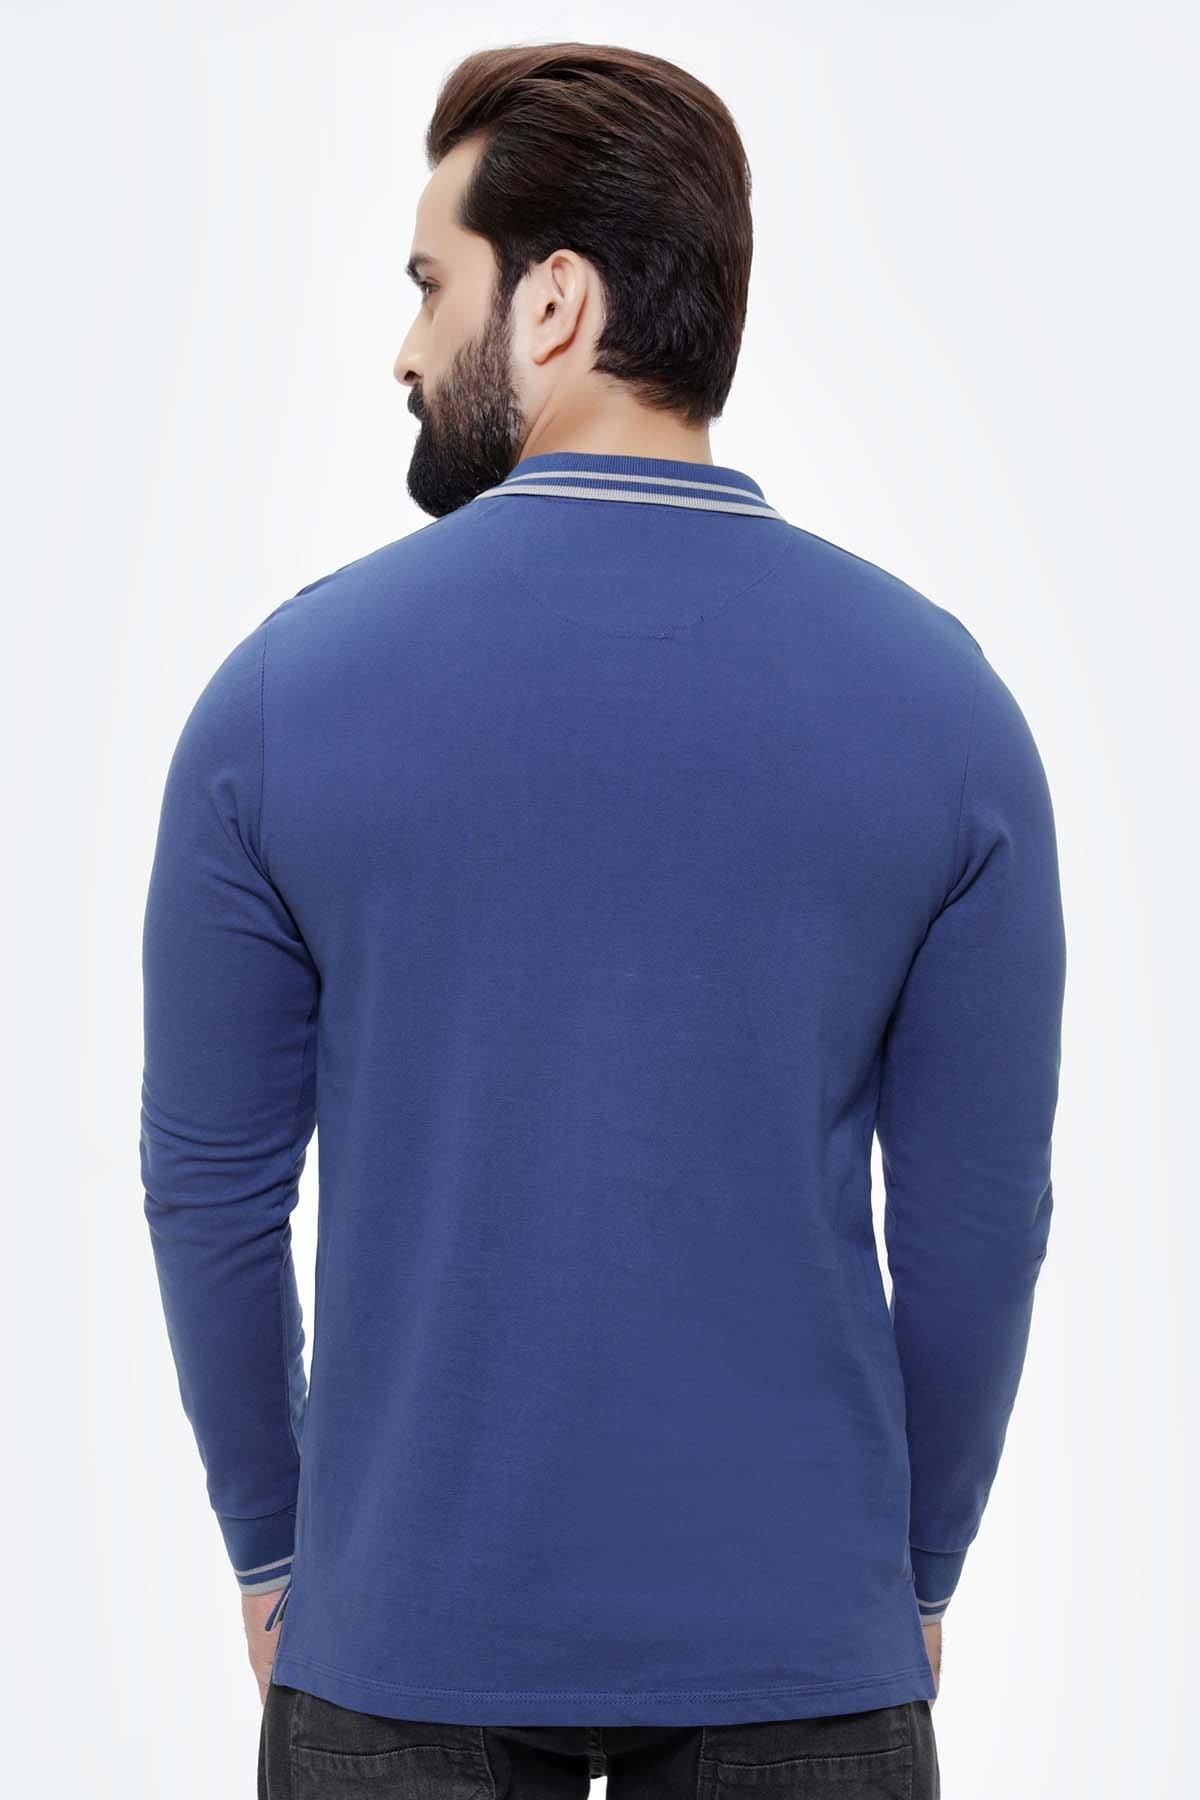 T SHIRT TIPPING COLLAR FULL SLEEVE ROYAL BLUE - Charcoal -